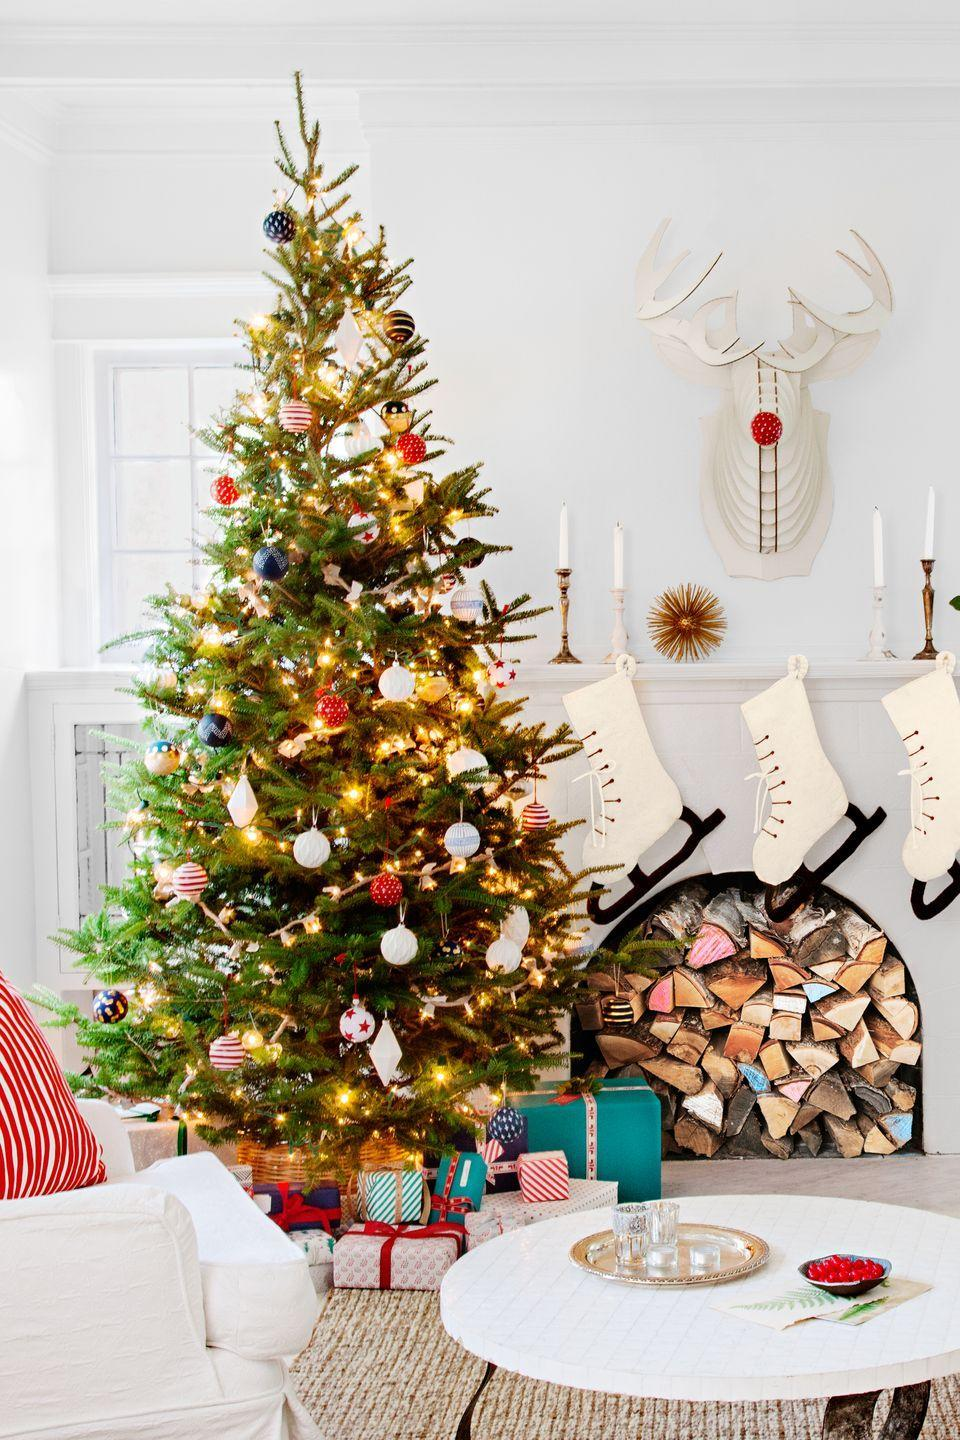 """<p>For a frosty finish, hang ice-skate stockings; their nubby white felt complements other neutral textures in the room such as the slip-covered sofa.</p><p><a class=""""link rapid-noclick-resp"""" href=""""https://go.redirectingat.com?id=74968X1596630&url=https%3A%2F%2Fwww.wayfair.com%2Fholiday-decor%2Fpdp%2Farcadia-home-hand-felted-wool-ice-skate-stocking-acad1211.html&sref=https%3A%2F%2Fwww.countryliving.com%2Fshopping%2Fg1407%2Fpersonalized-christmas-stockings%2F"""" rel=""""nofollow noopener"""" target=""""_blank"""" data-ylk=""""slk:SHOP ICE-SKATE STOCKINGS"""">SHOP ICE-SKATE STOCKINGS</a></p>"""